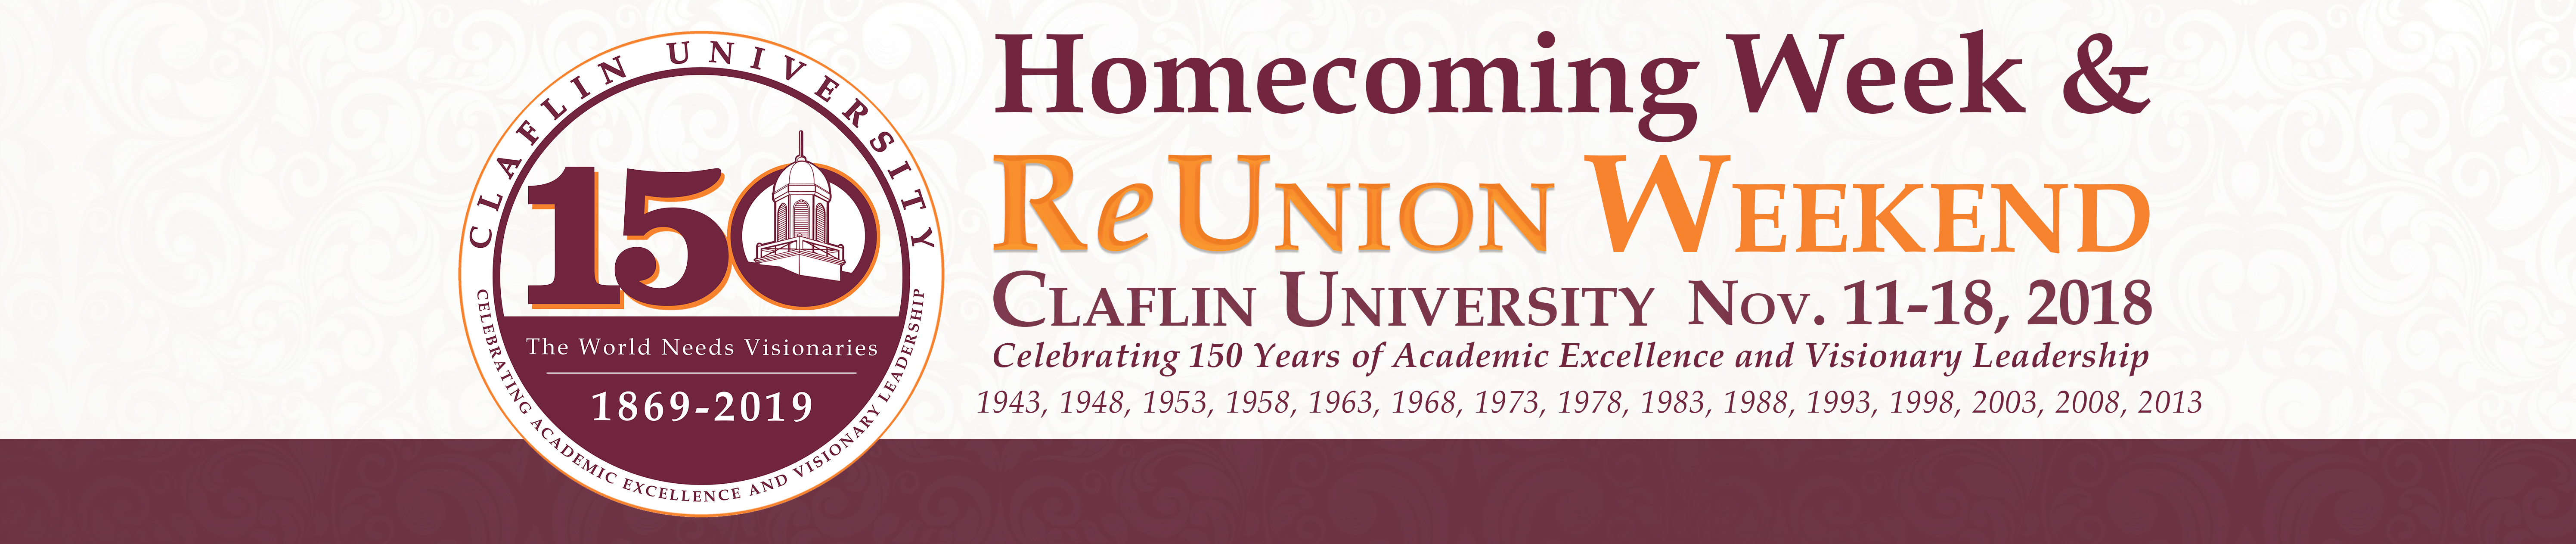 Home coming page banner